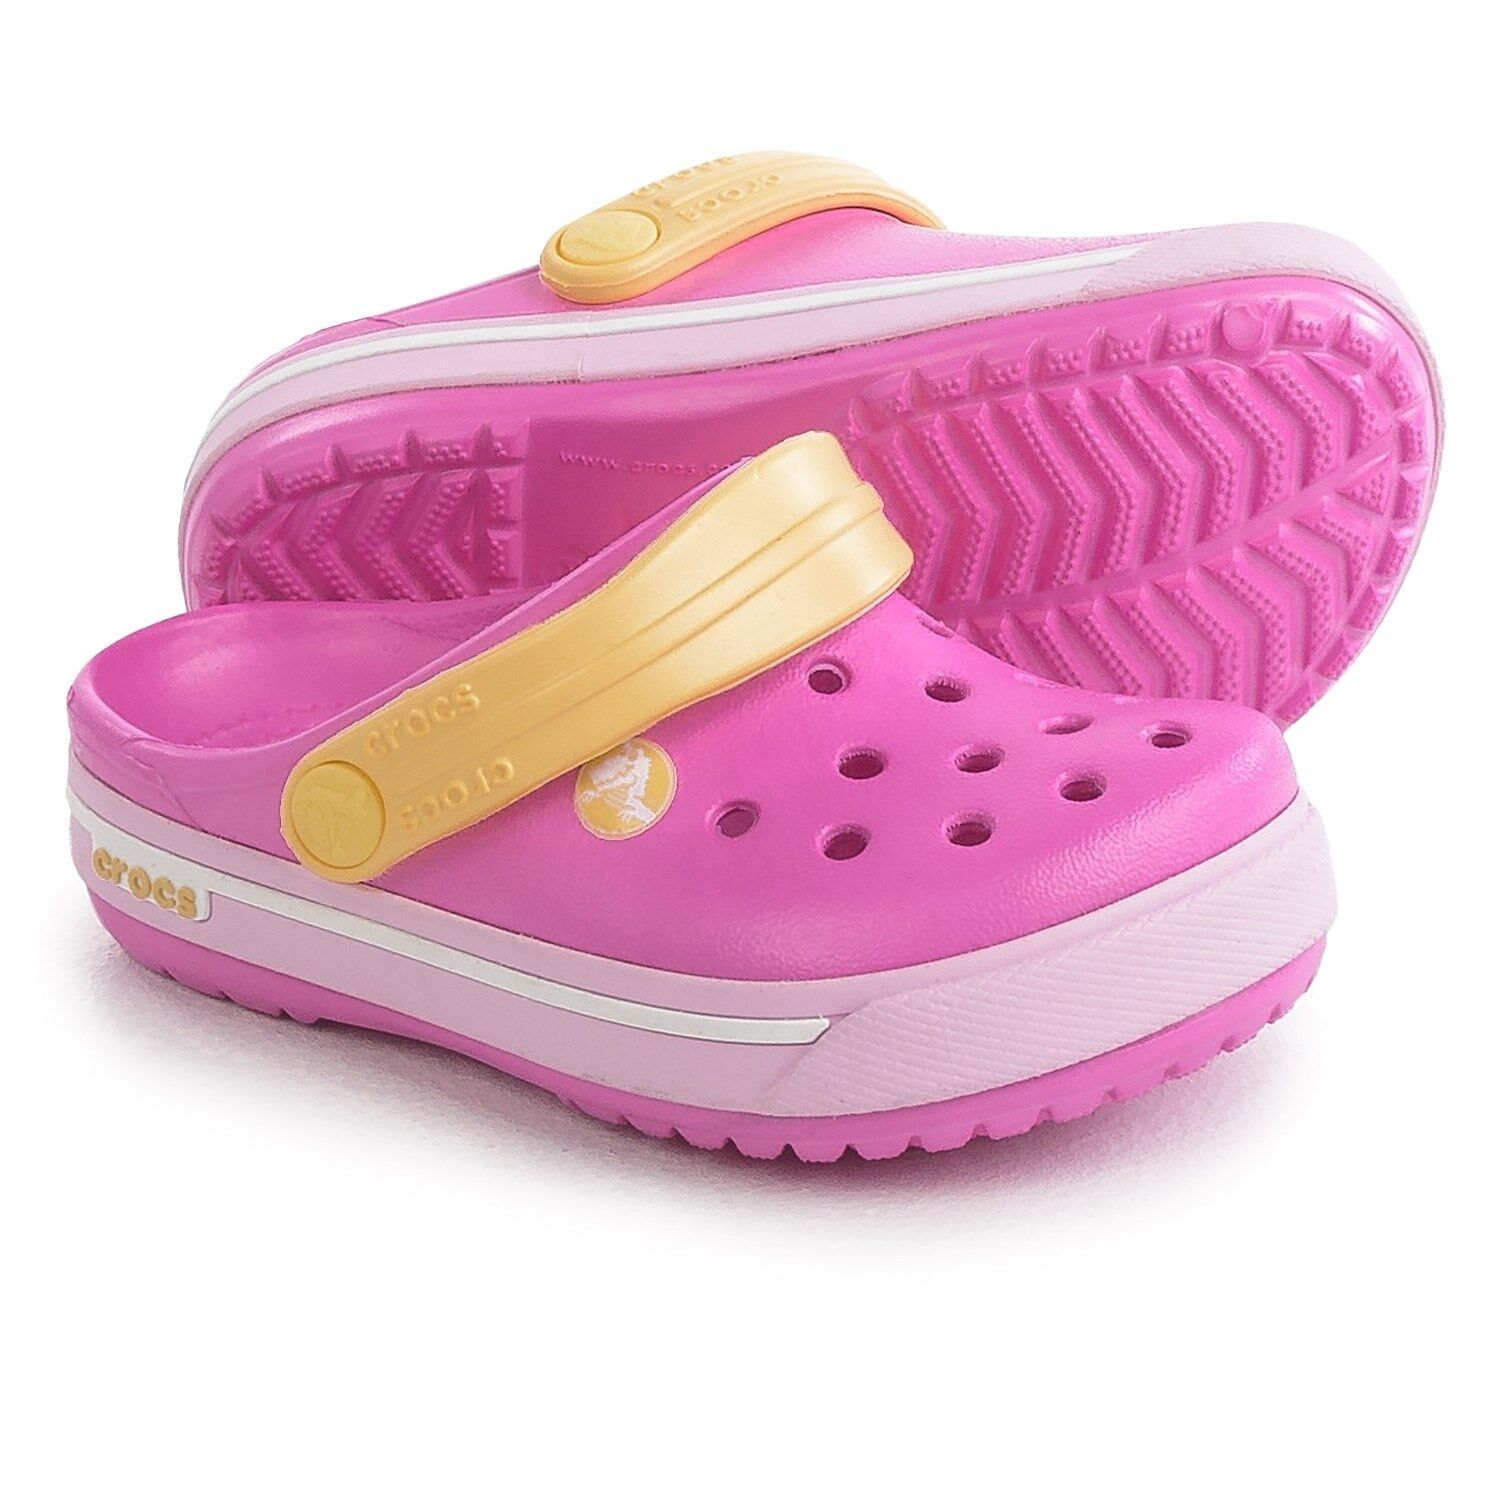 Crocs Crocband II.5 YOUTH Clogs Girls Pink/Yellow Water Shoe